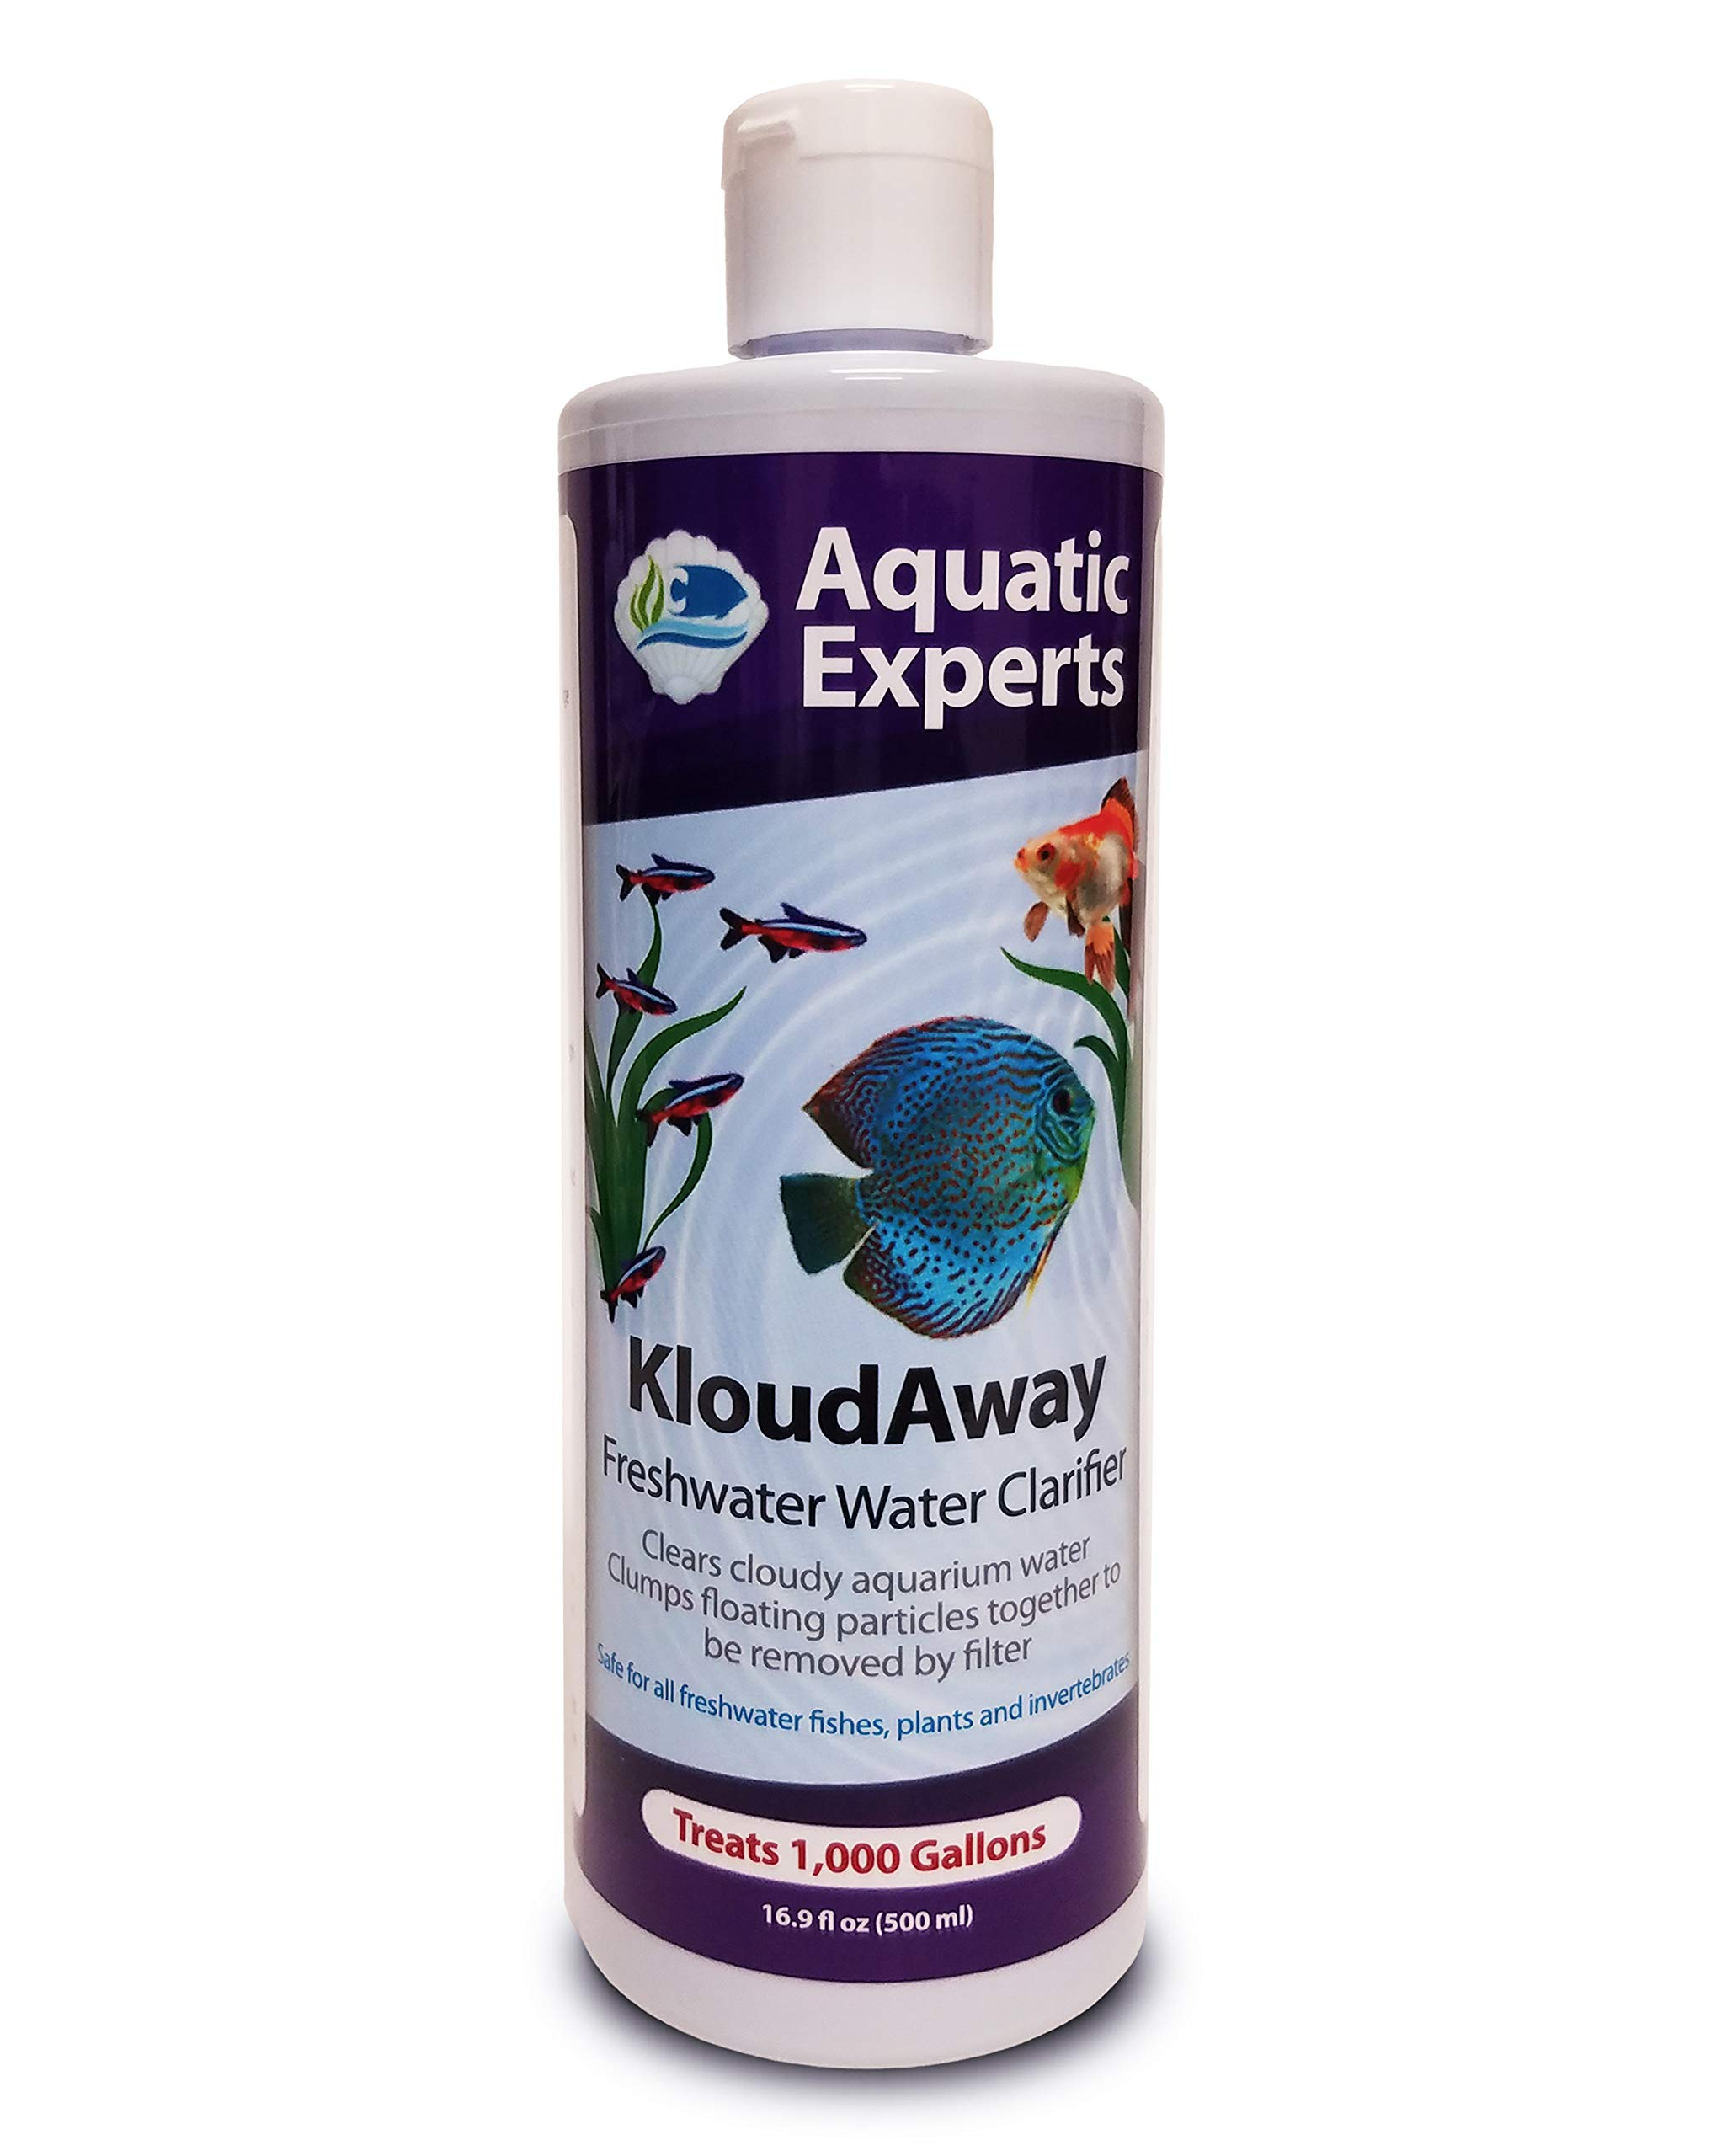 KloudAway Freshwater Aquarium Water Clarifier - Clears Cloudy Water, Water Clarifier for Fish Tank, Made in USA (1 Pack) by Aquatic Experts